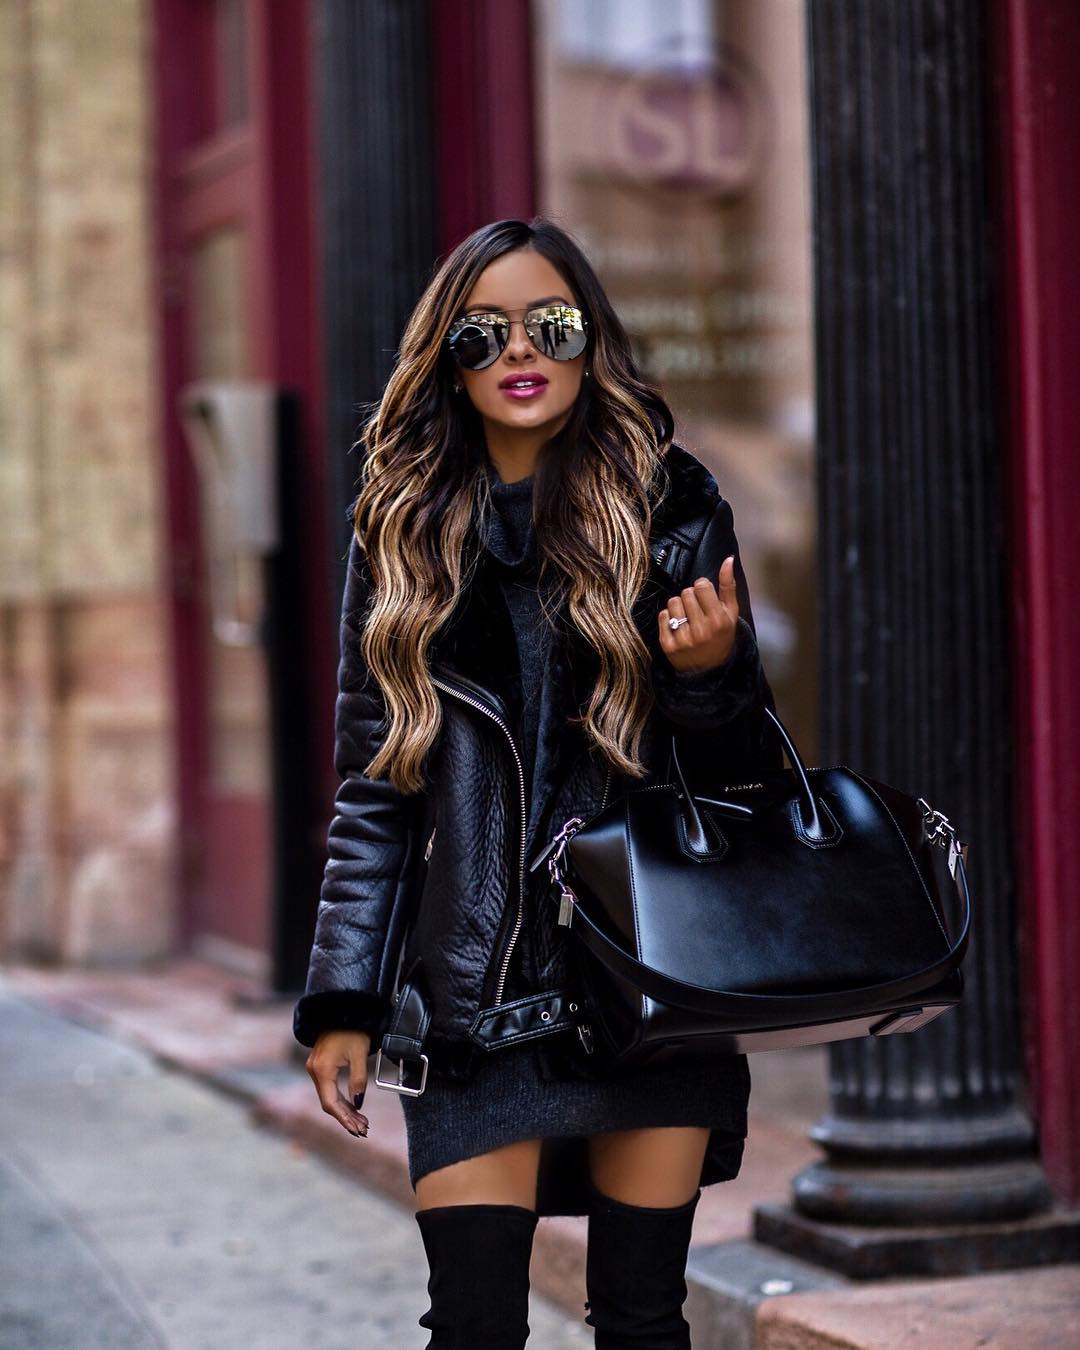 A leather jacket is a classic and alway-on-trend staple